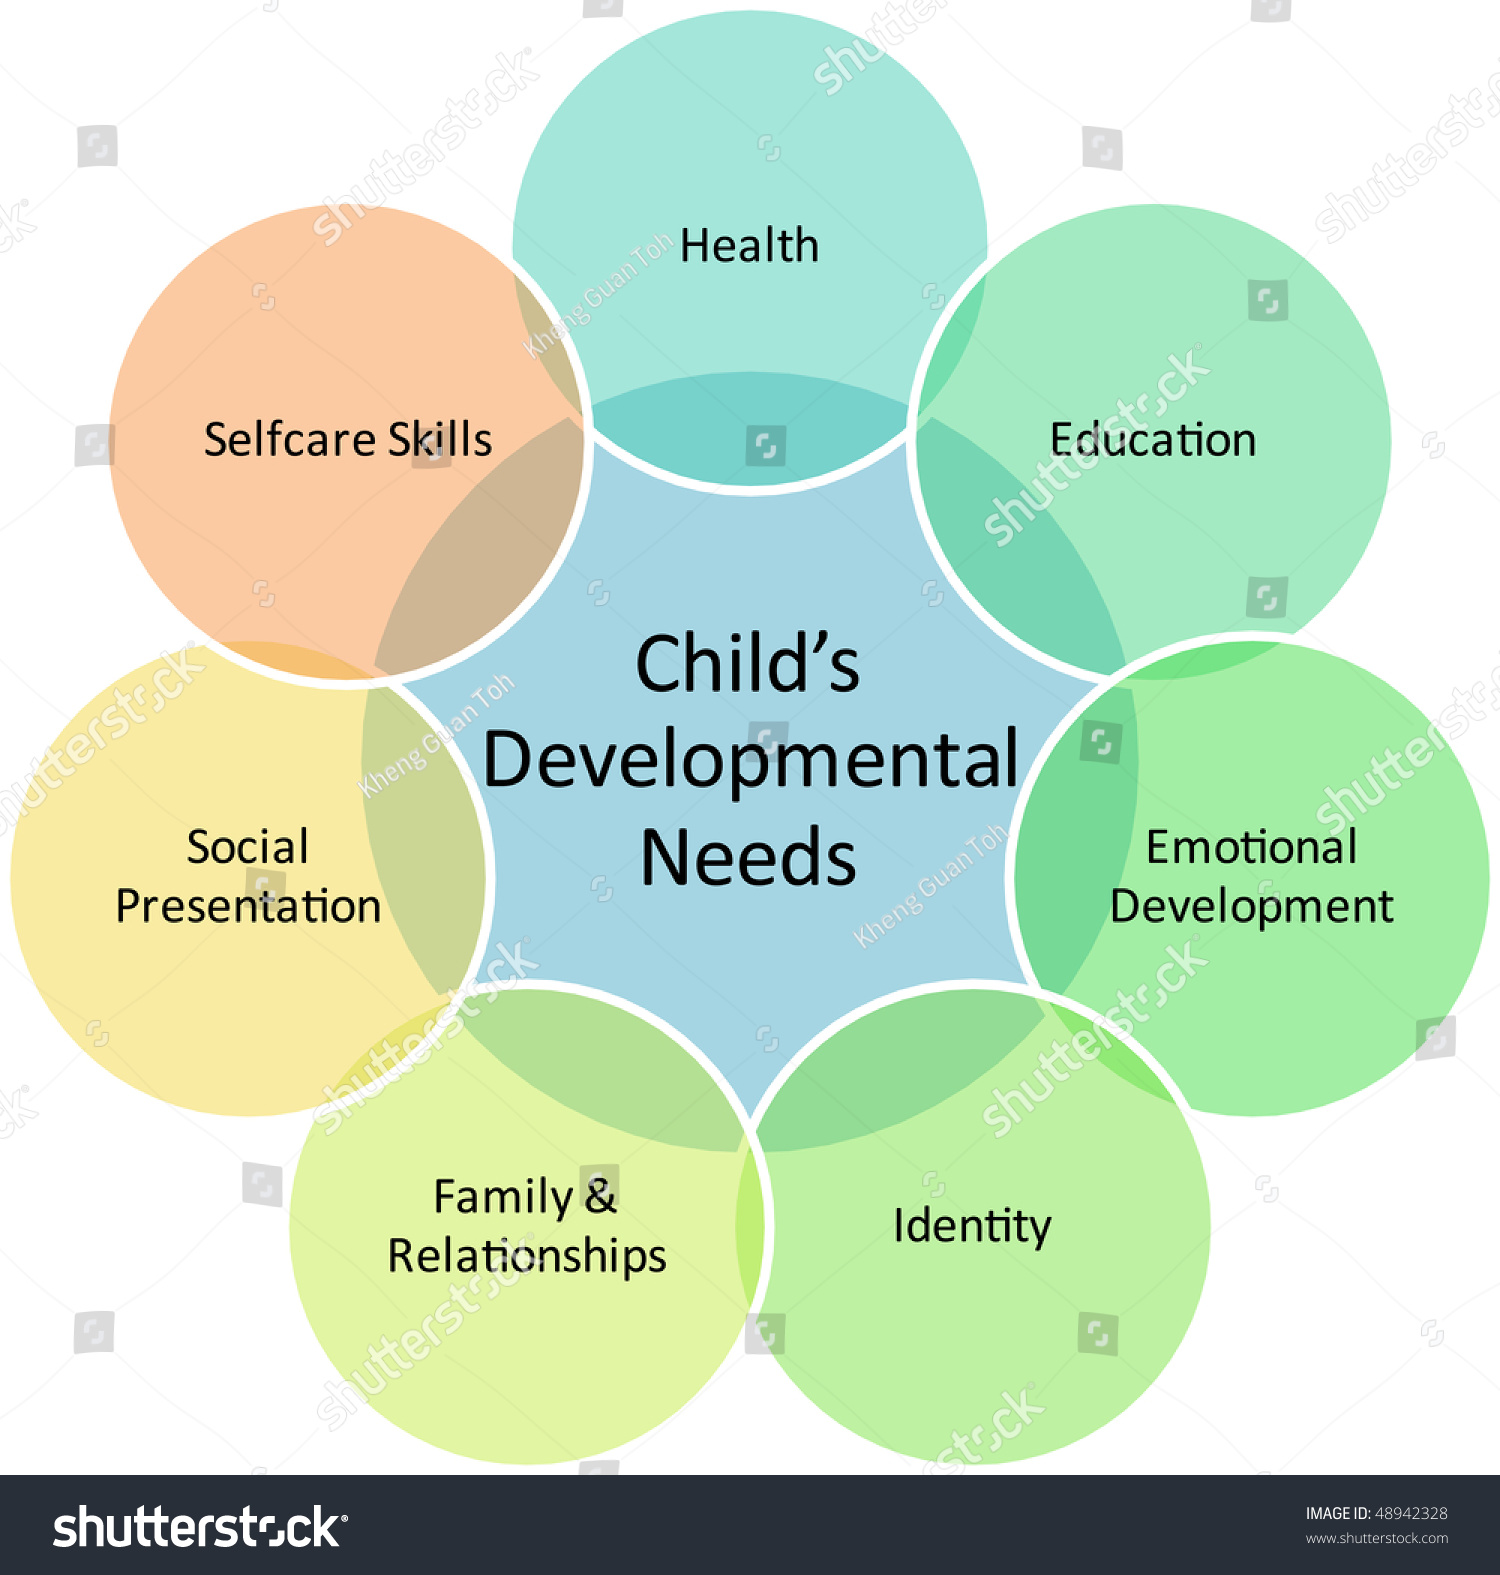 A Starter S Guide To Design Clinical Research Coordinator: Child Development Management Business Strategy Concept